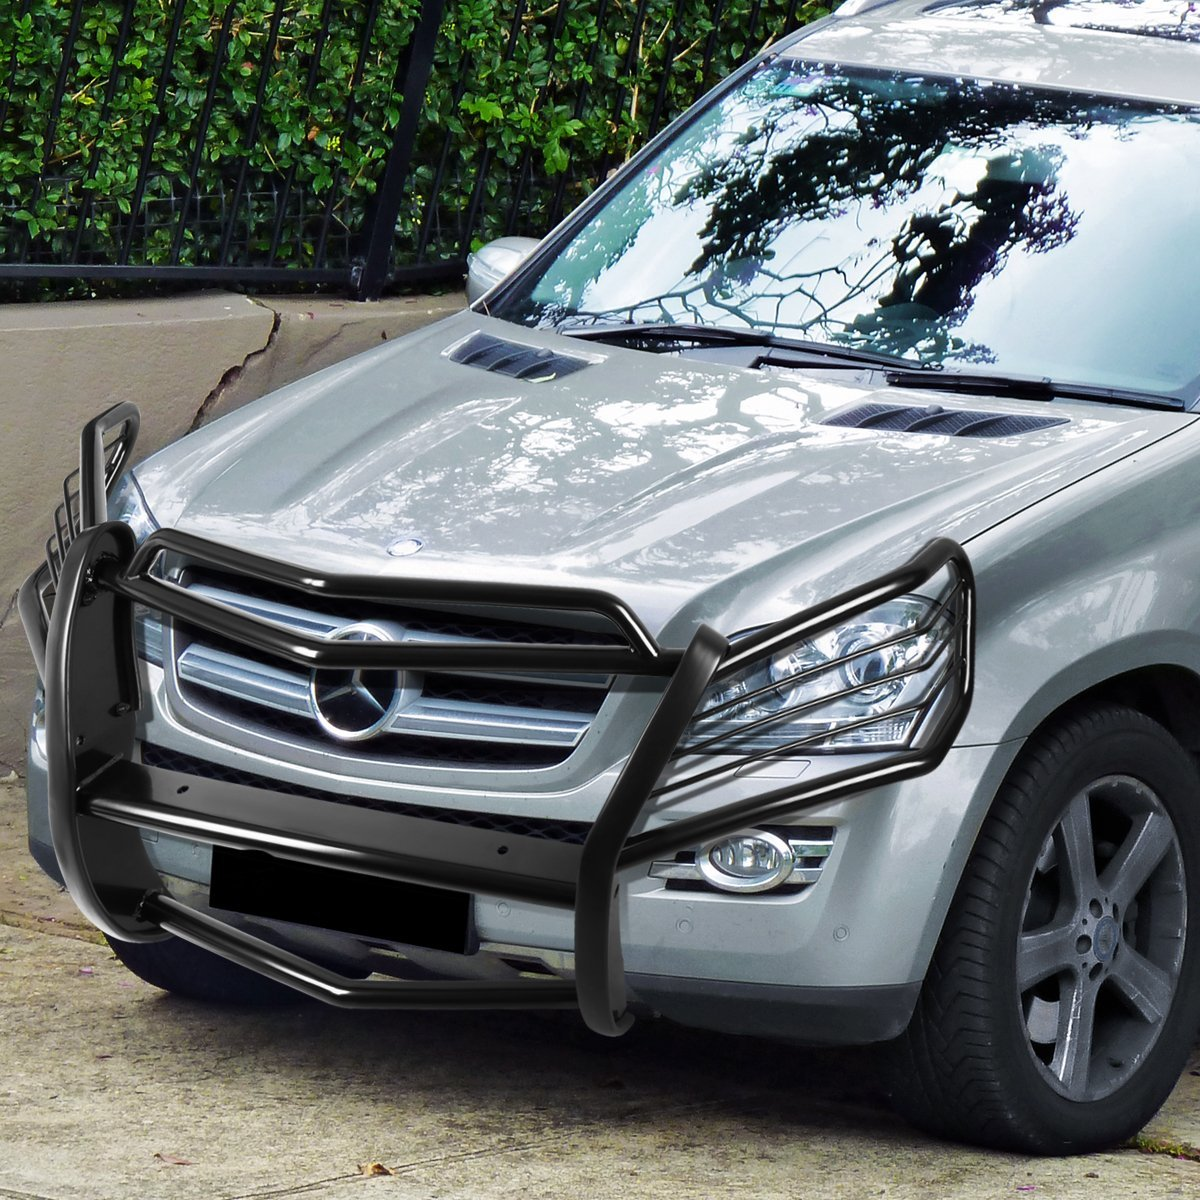 07 12 mercedes benz x164 gl class front bumper protector for Mercedes benz guard for sale